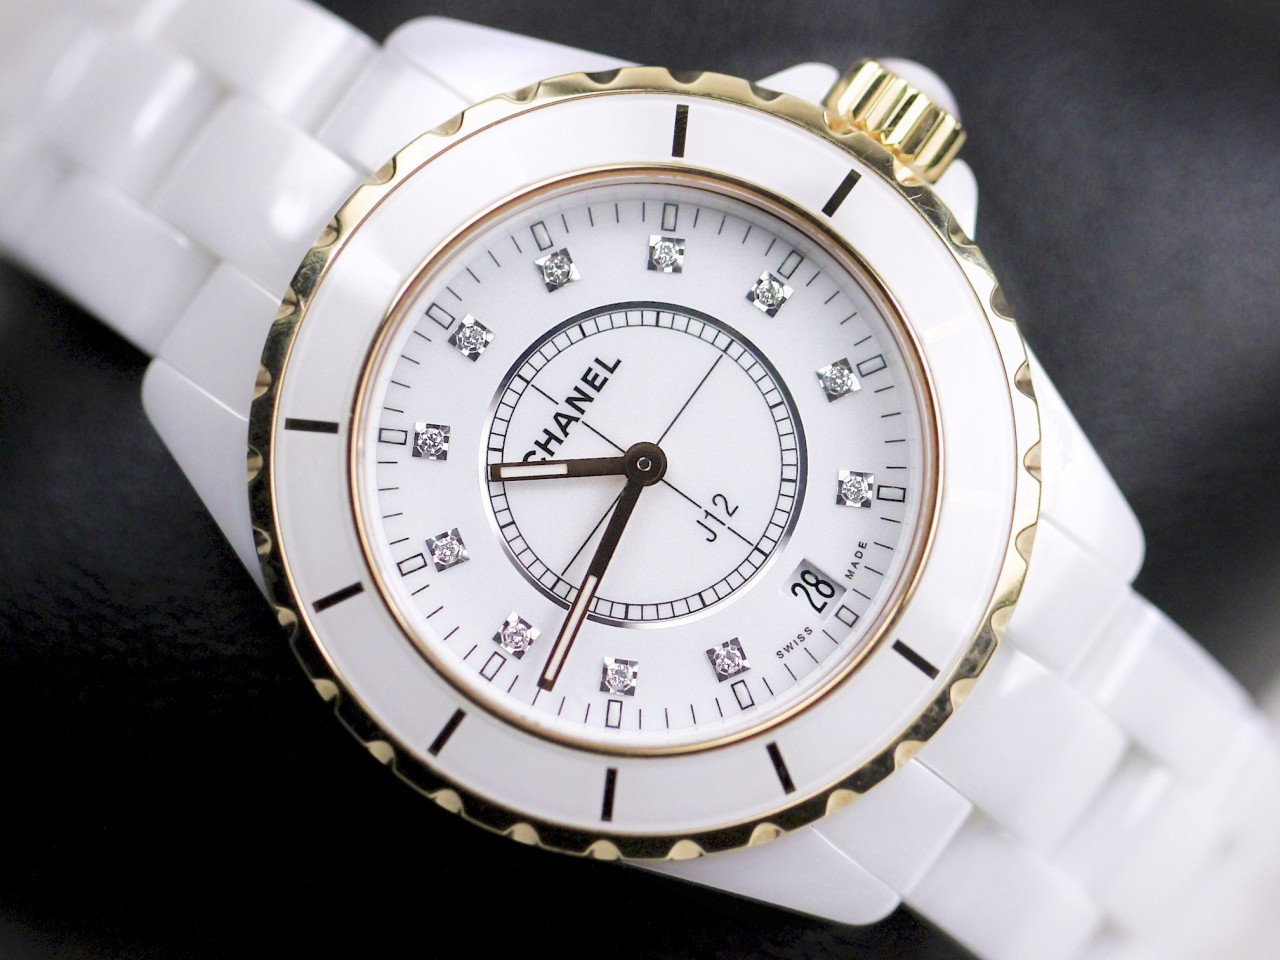 case watch editor crop scale pastel a product the in ladies with false watches armour new shop subsampling ceramic chanel jewellery pink white upscale